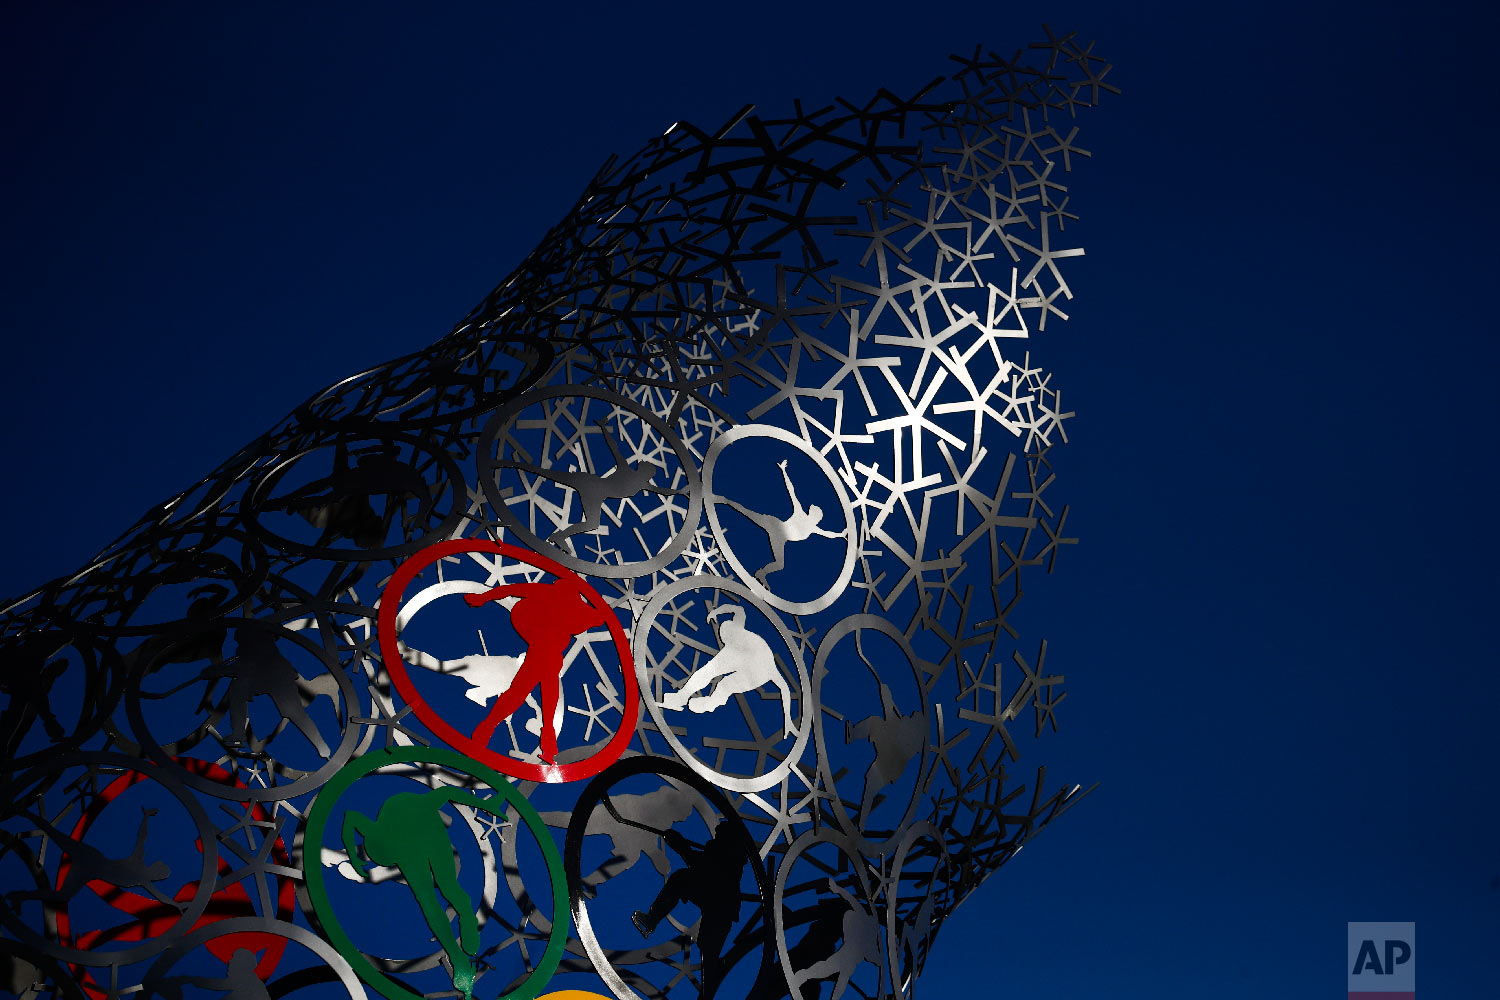 Sunlight falls on a sculpture made with rings depicting ice sports at the Olympic Park prior to the 2018 Winter Olympics in Gangneung, South Korea, Monday, Feb. 5, 2018. (AP Photo/Jae C. Hong)